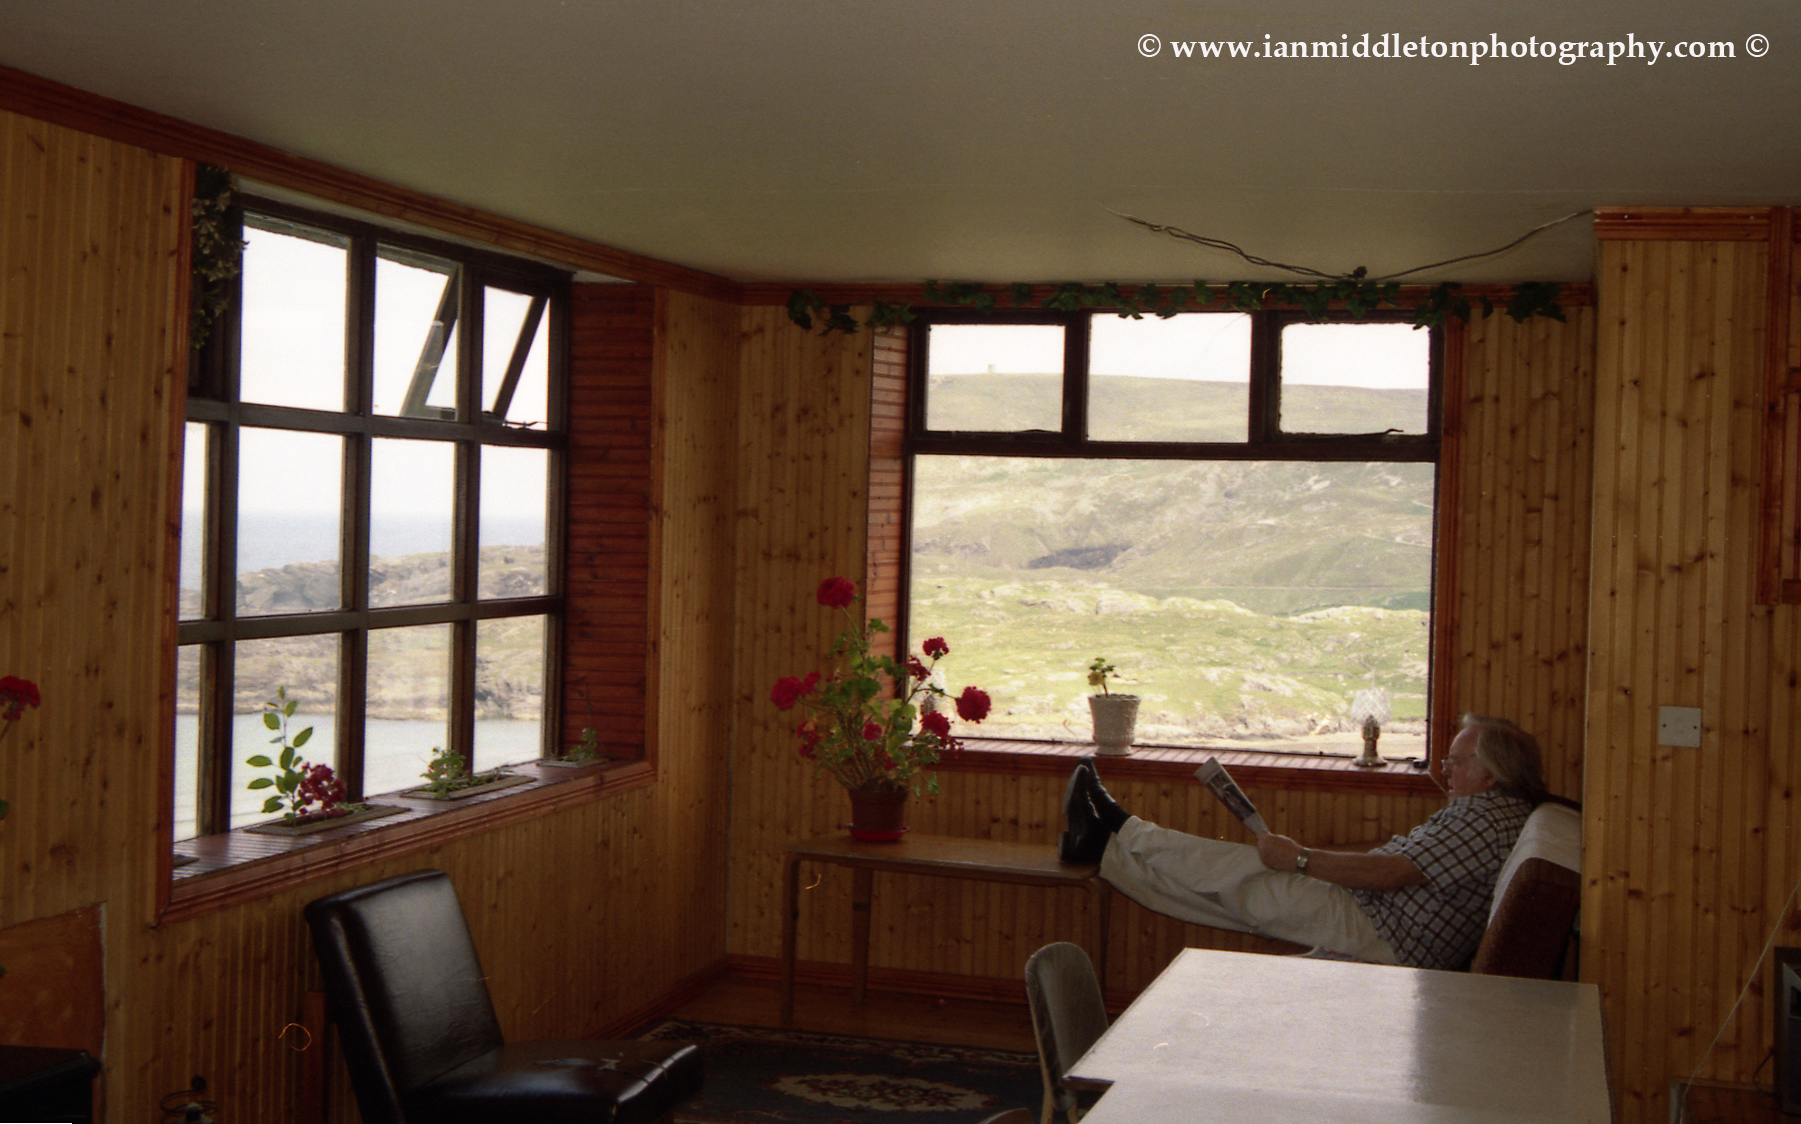 The Dooey Hostel in Glencolmcille is a great place to relax and enjoy the views